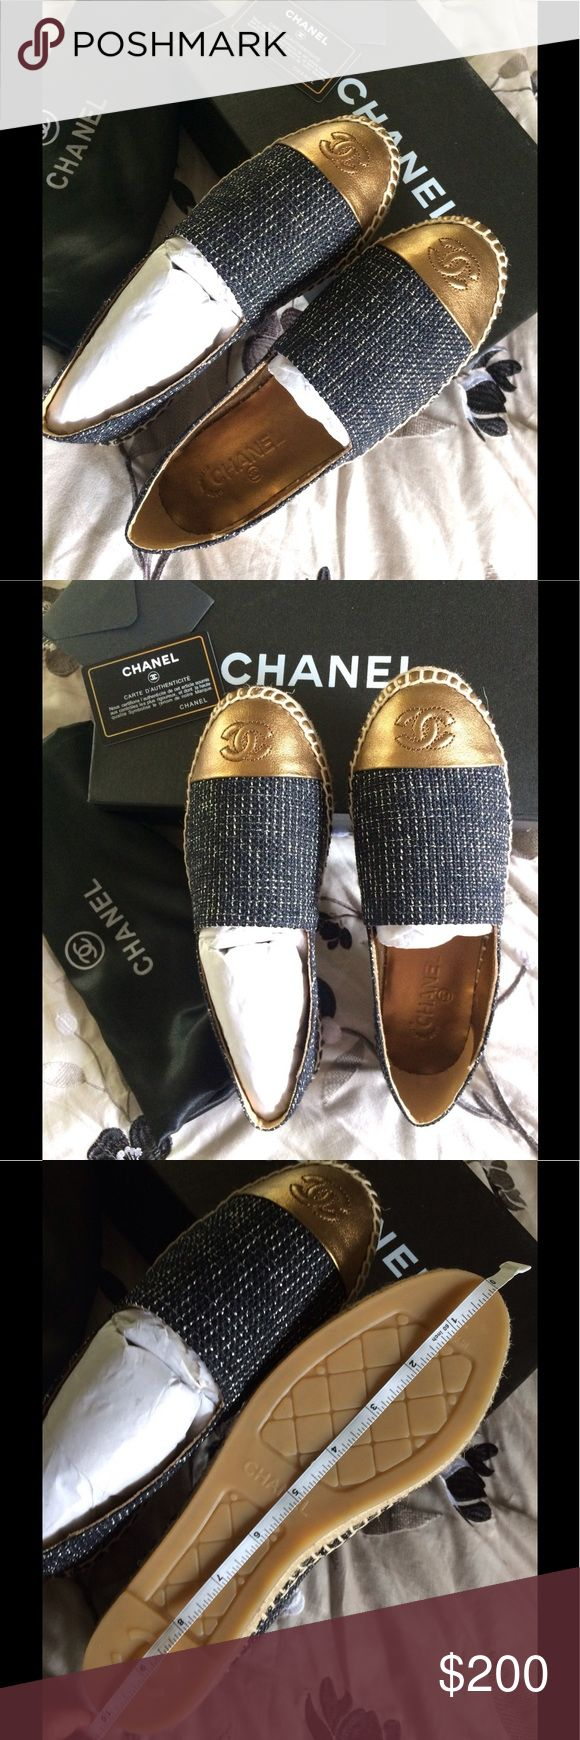 Chanel espadrilles PLEASE READ BEFORE BUY.                                    SAME DAY SHIPPING, COME WHIT DUST BAG , BOX, RUN SMALL SIZE , FIT LIKE 7 US (TAG SAID 8 ), PRICE REFLECT , HIGH QUALITY MATERIAL .                                                                 IF YOU HAVE A PROBLEM WHIT YOUR ORDER CONTACT ME BEFORE PLEASE , THANK YOU :) Shoes Espadrilles